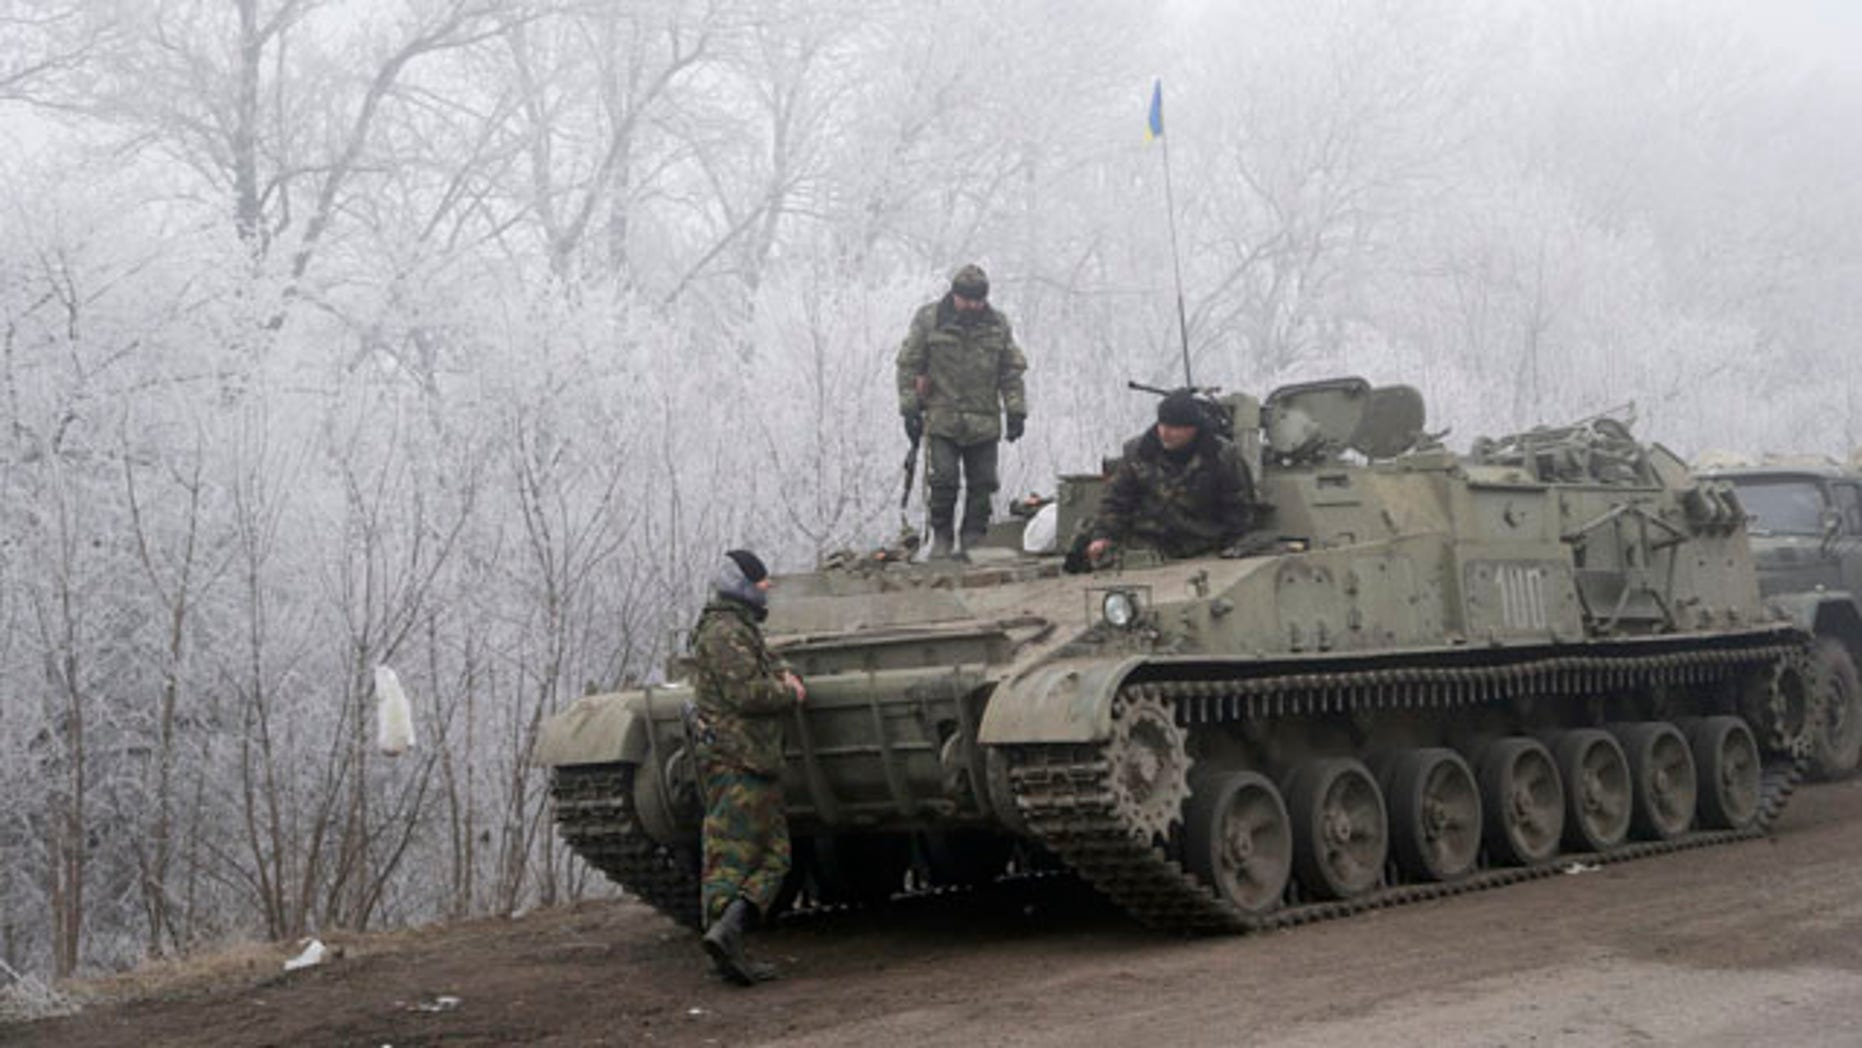 Feb. 15, 2015: Ukrainian government soldiers rest by armored vehicle on the road between the towns of Dabeltseve and Artemivsk. (AP Photo/Petr David Josek)